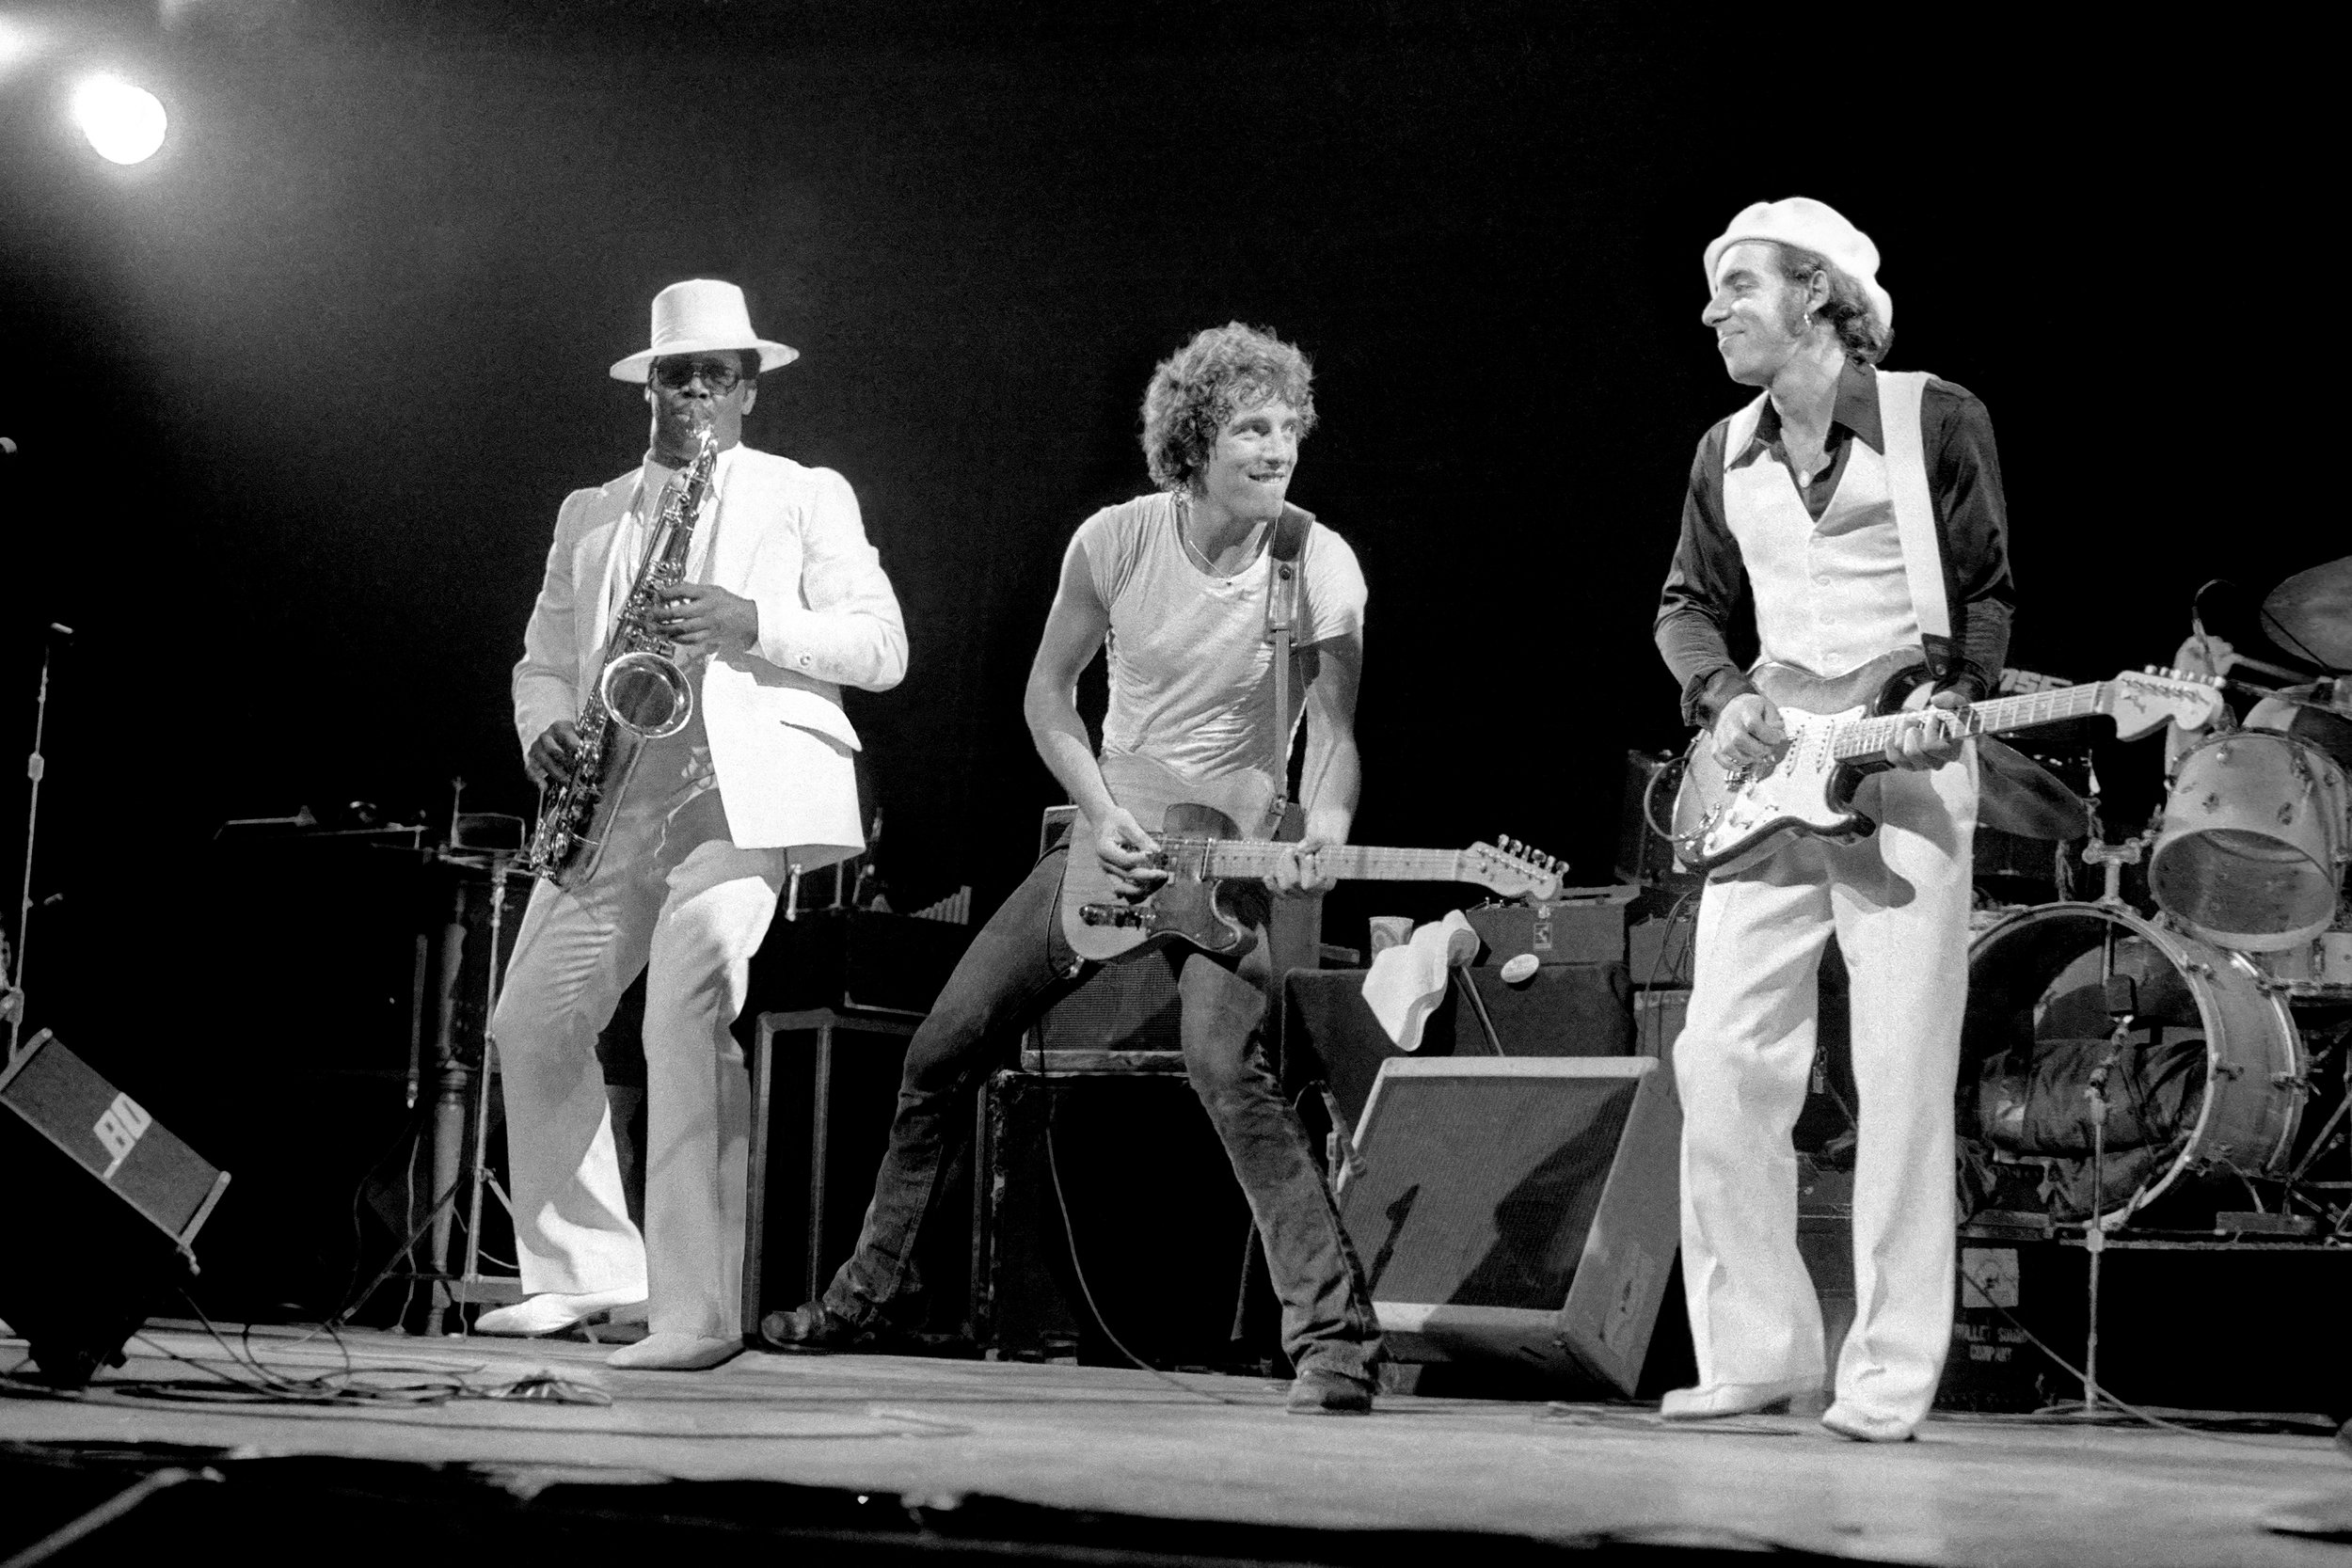 Bruce Springsteen and Clarence Clemons live on stage September 13, 1976.